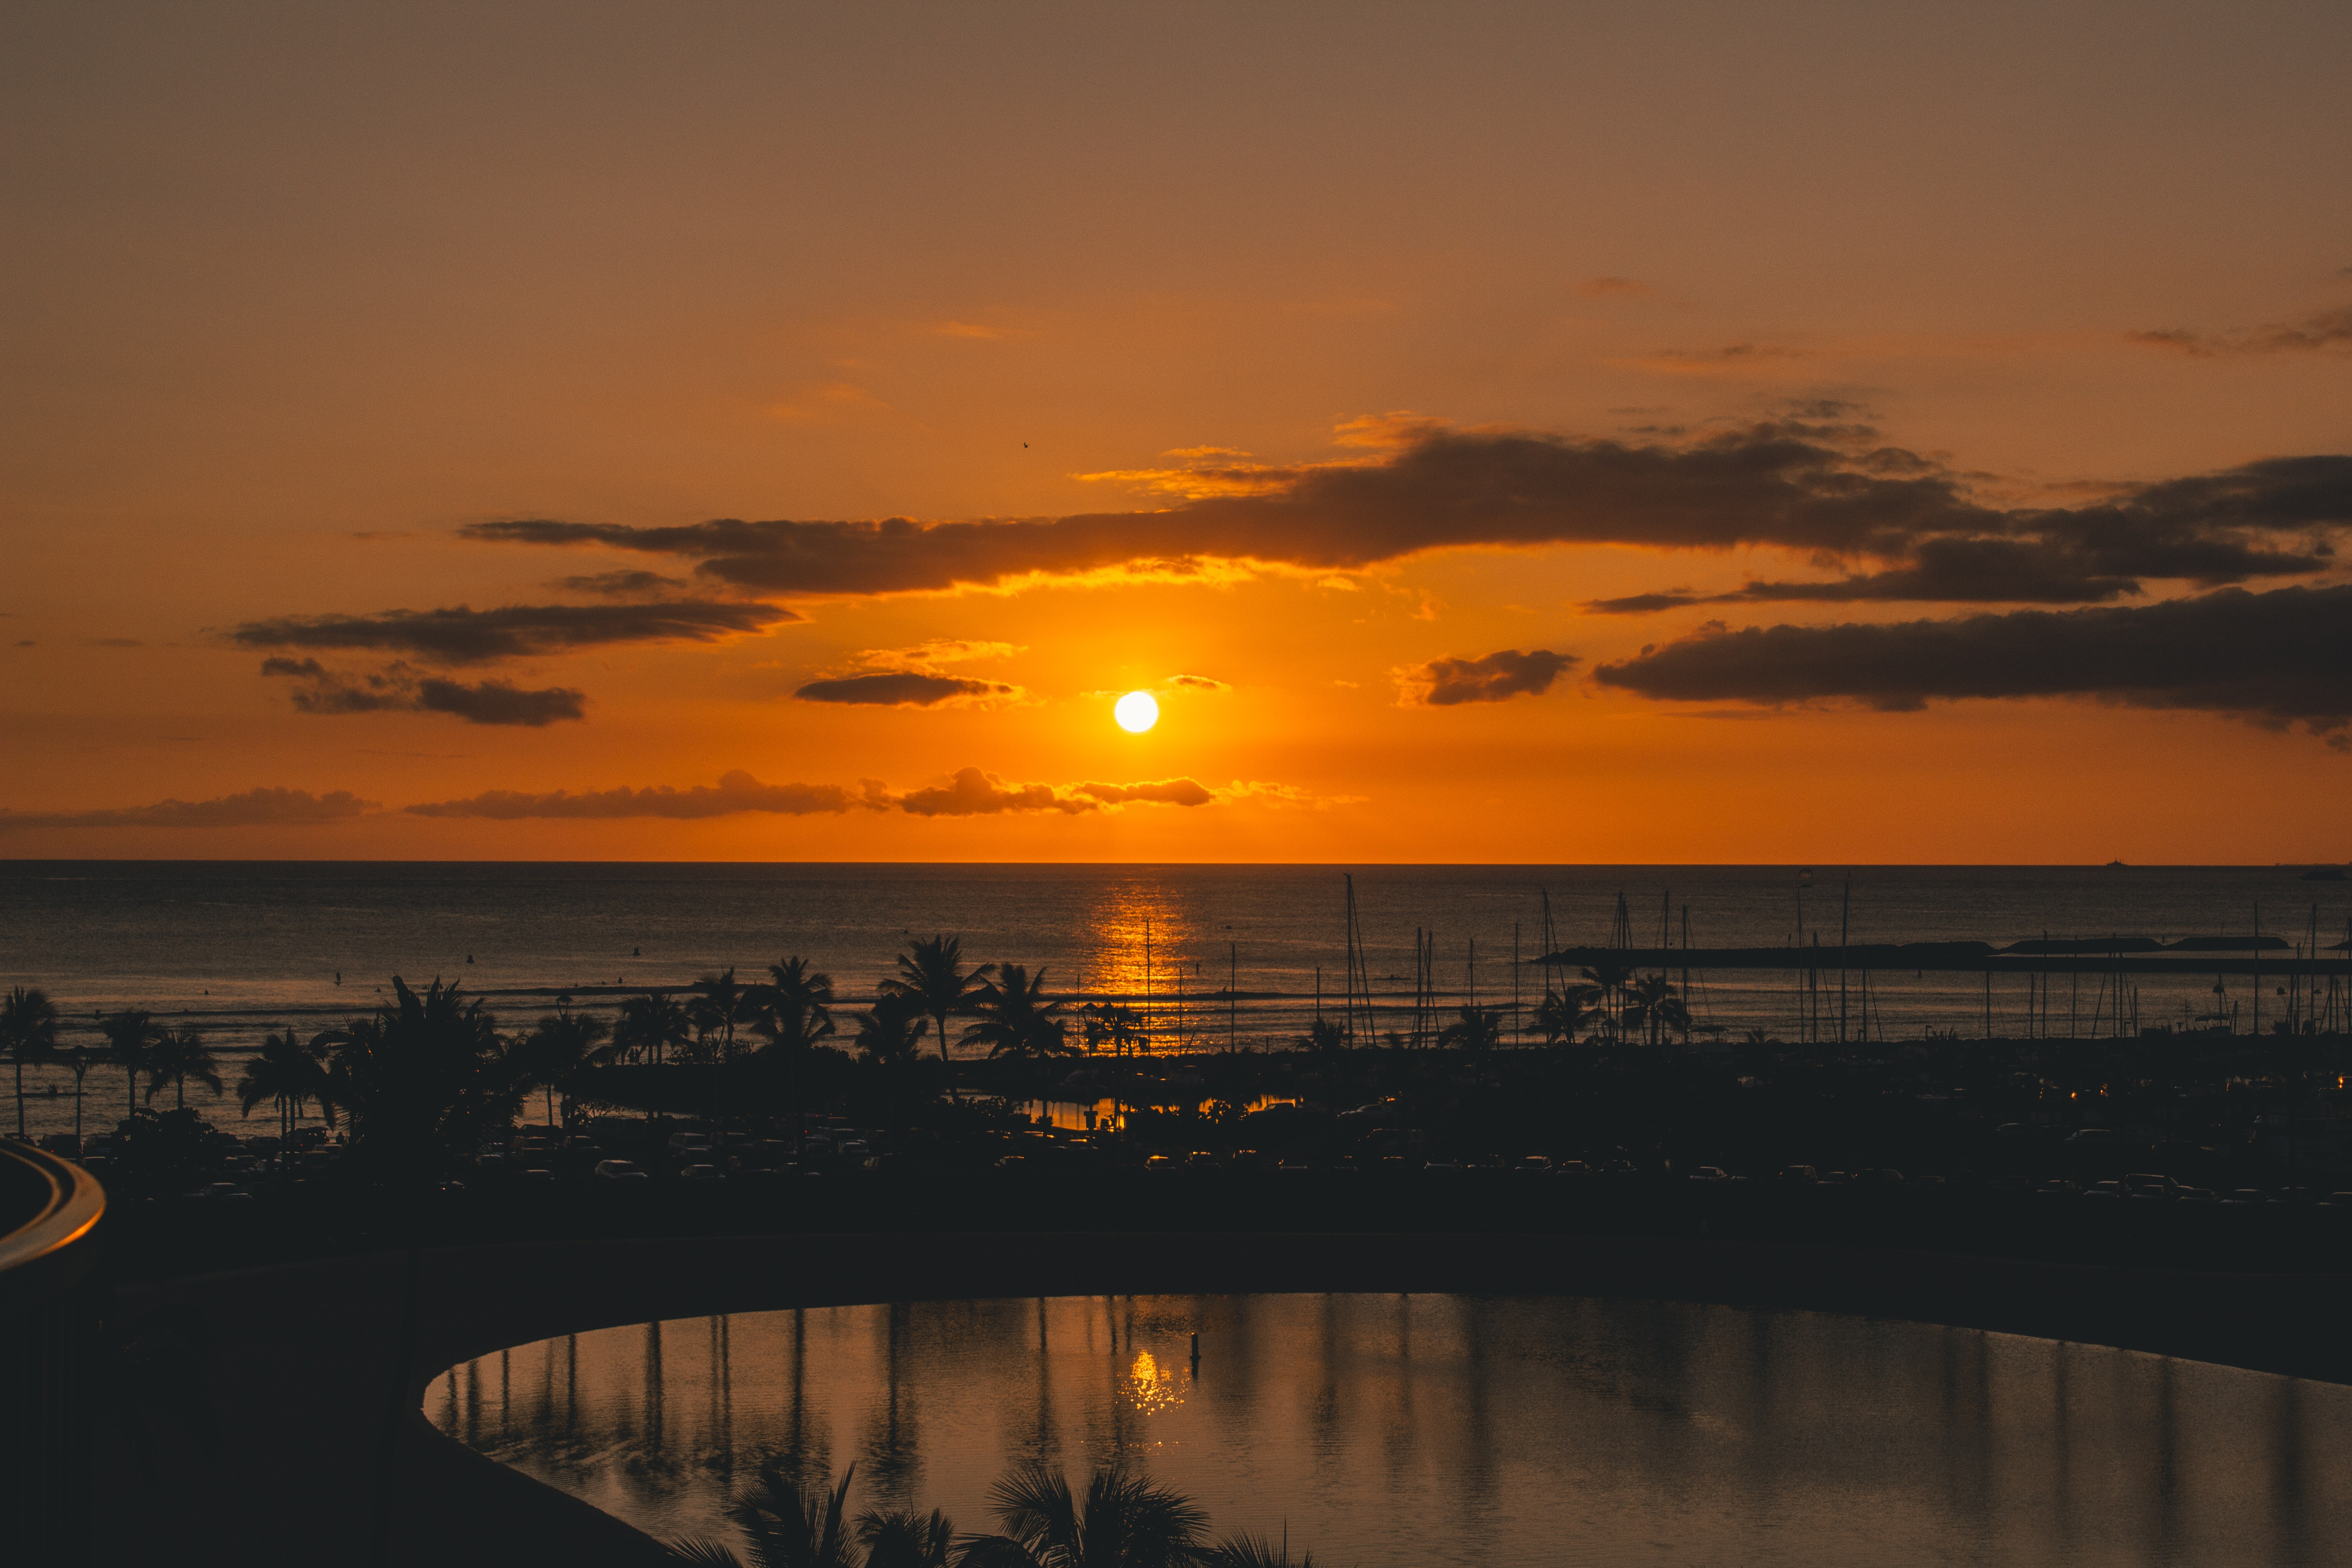 Silhouette of Beach With Background of Sunset, Architecture, Reflection, Waikiki, Vehicle, HQ Photo